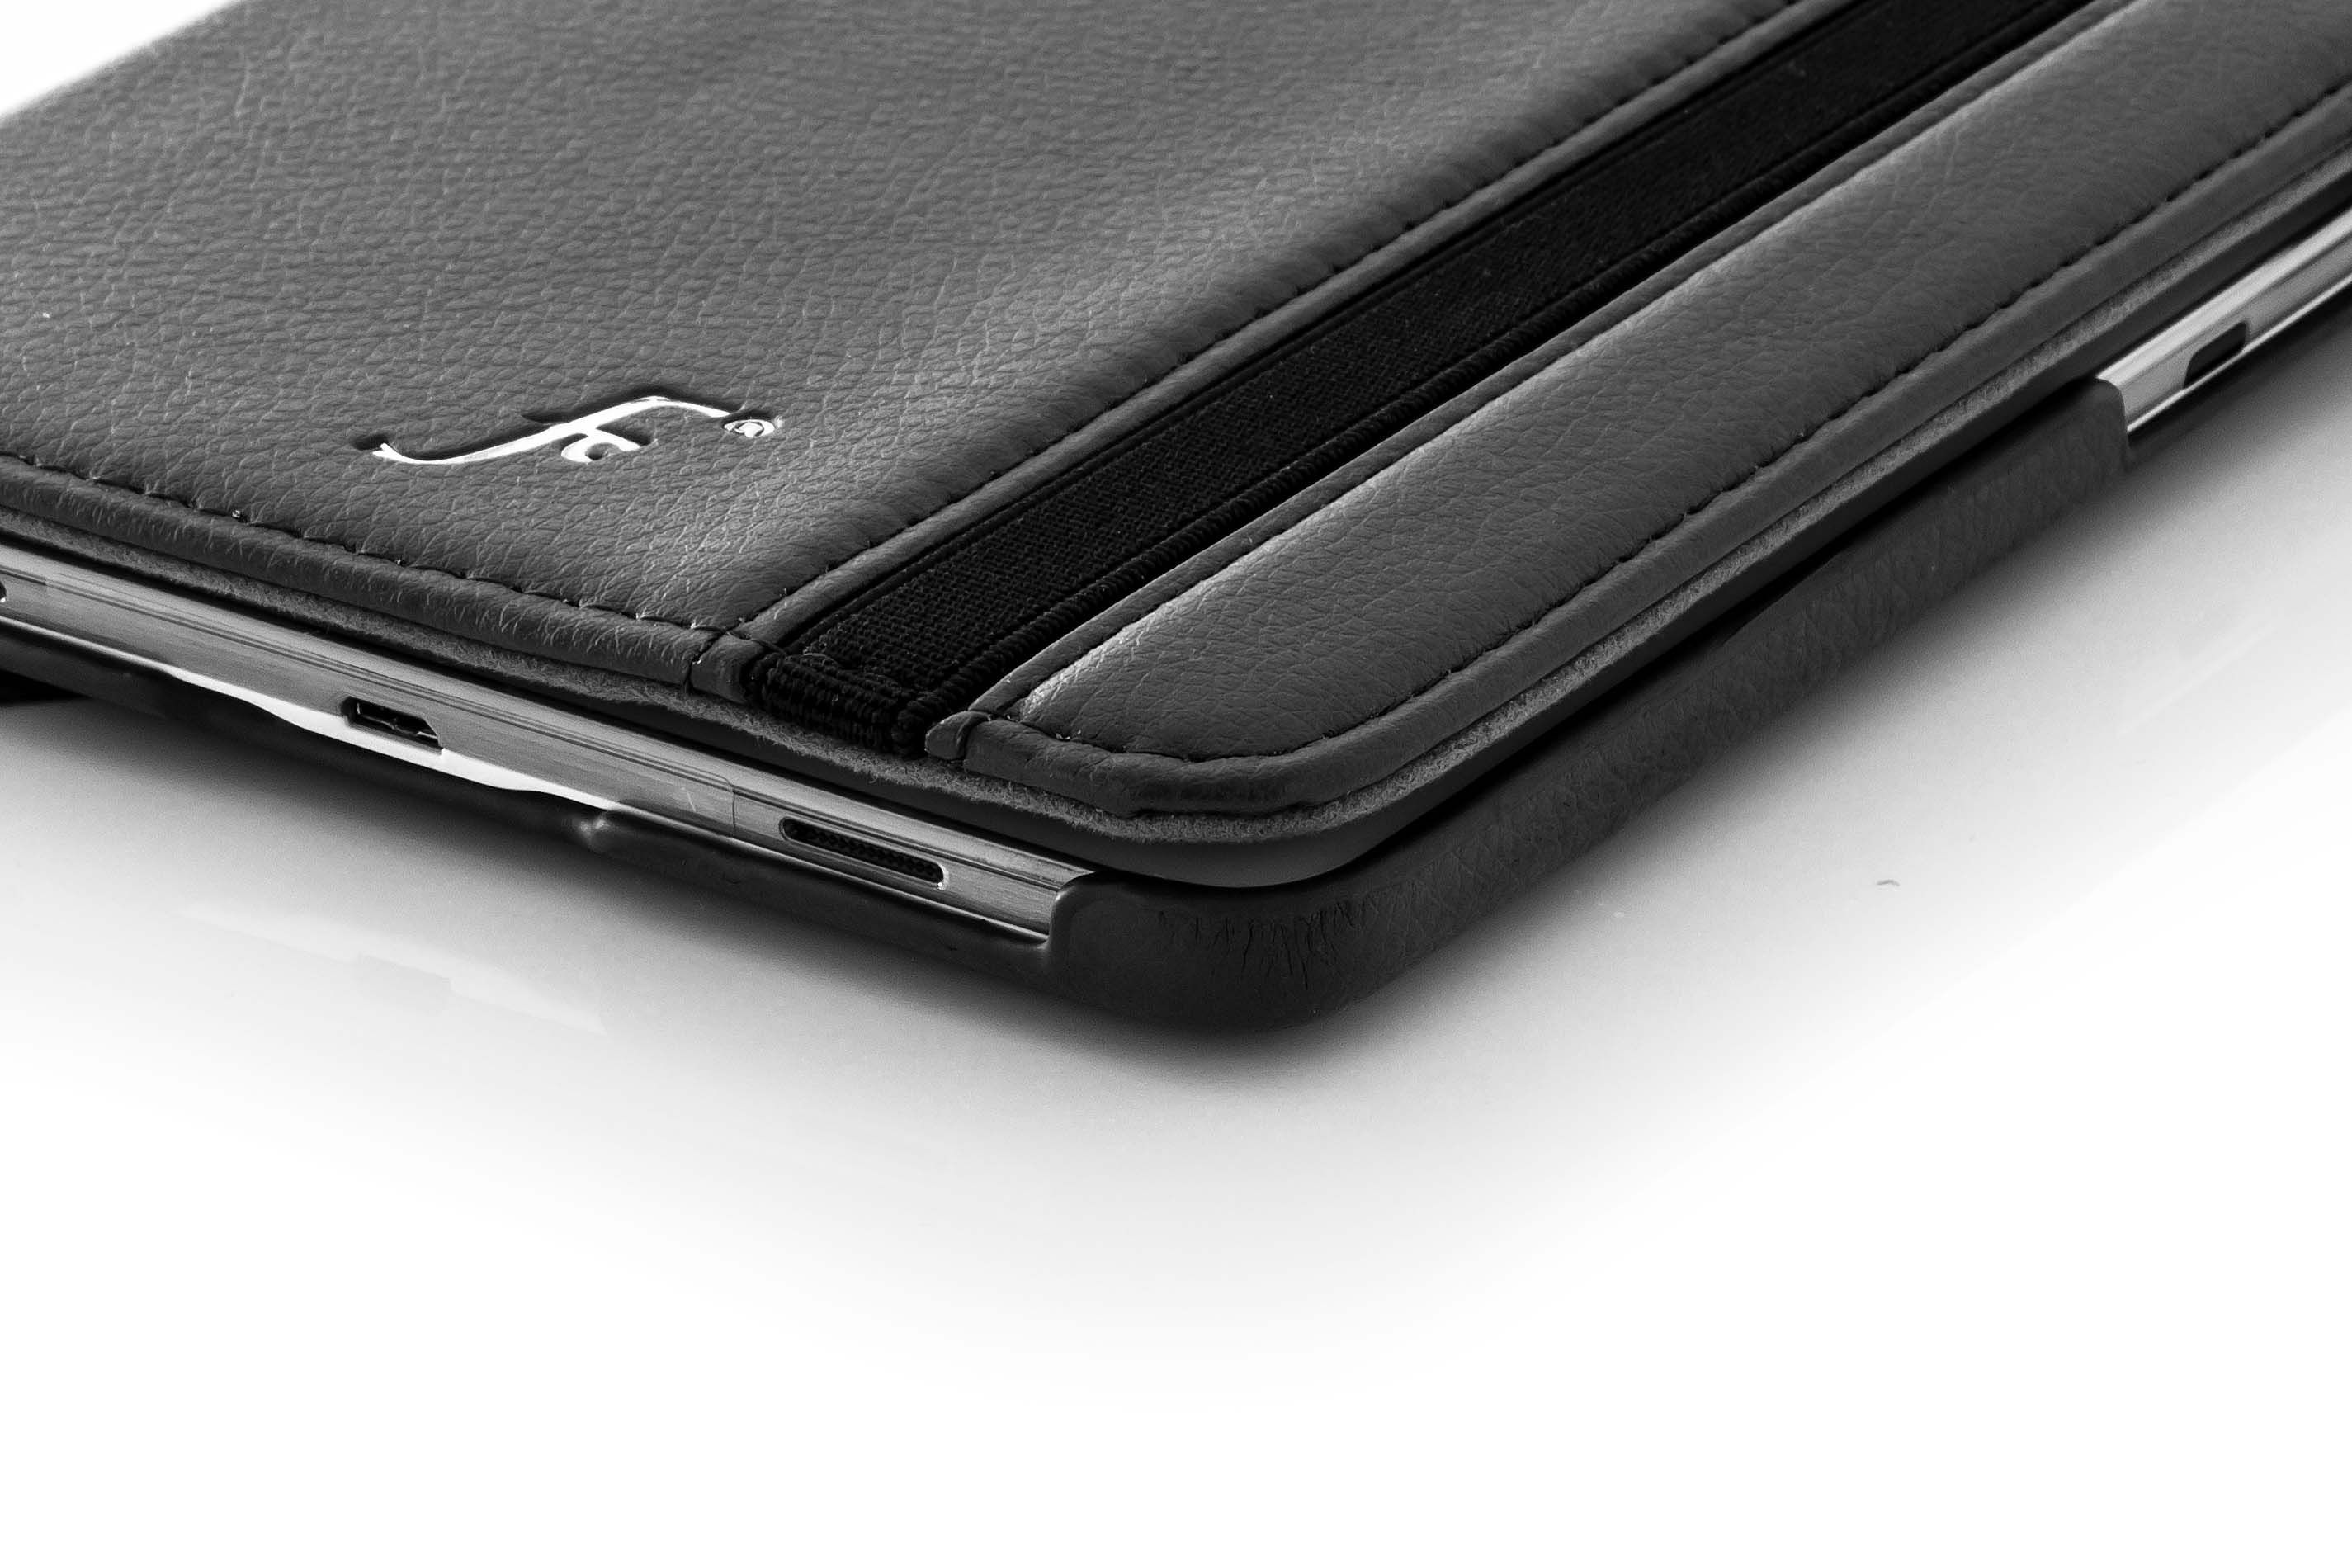 on sale dd328 ea8e8 Details about Leather Rotating Case Cover for Samsung Galaxy Tab E 9.6 T560